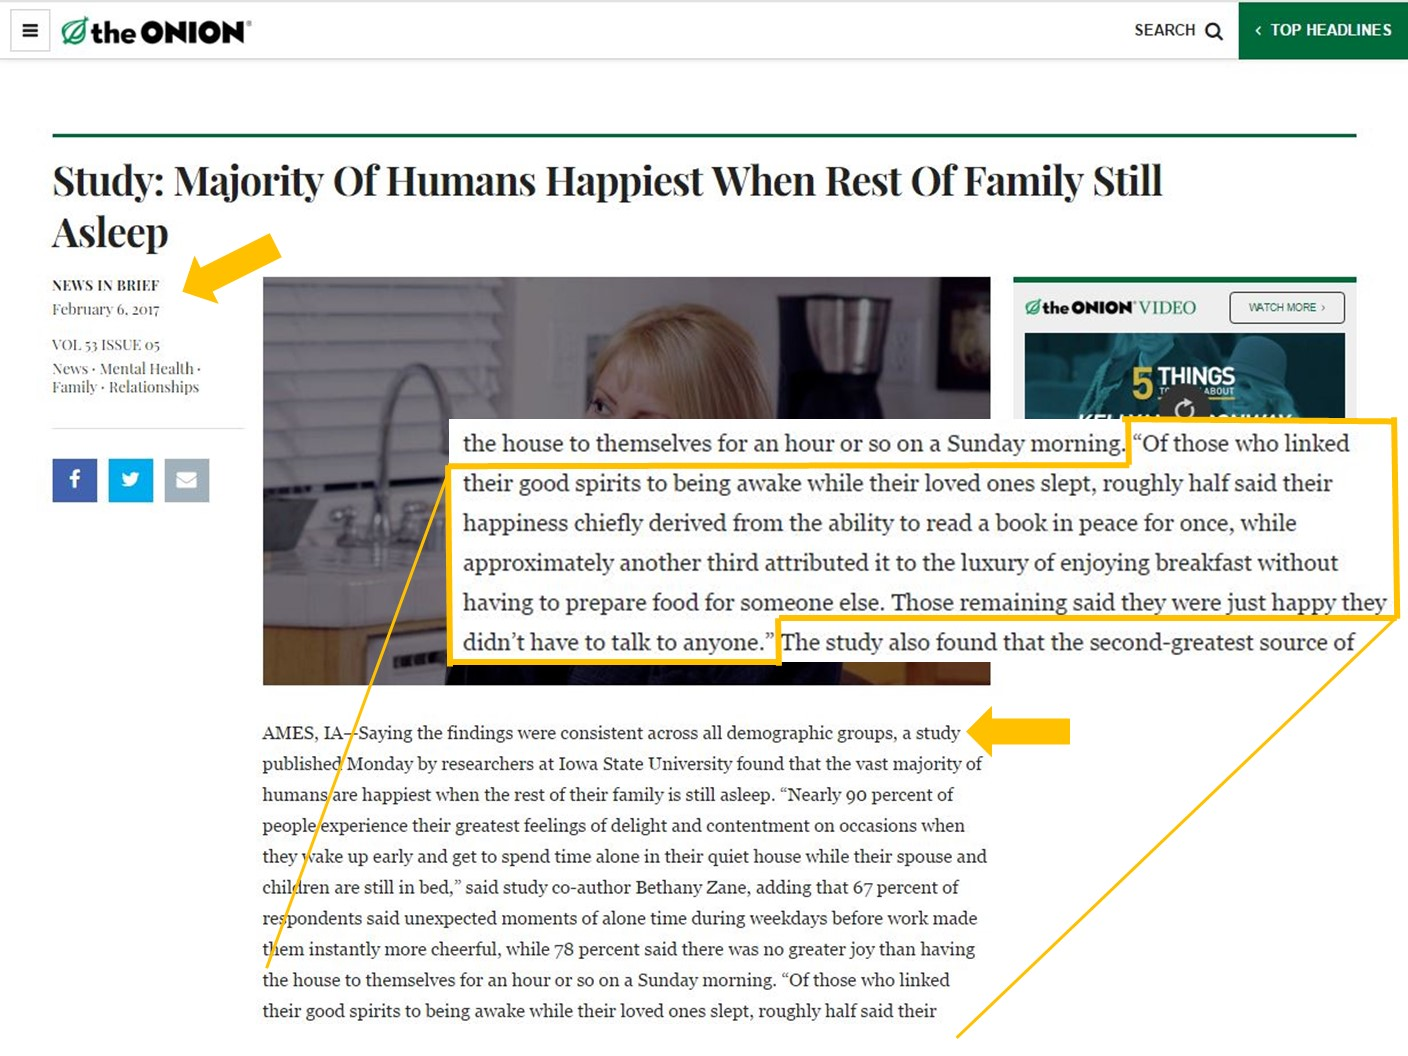 Screenshot of article from The Onion